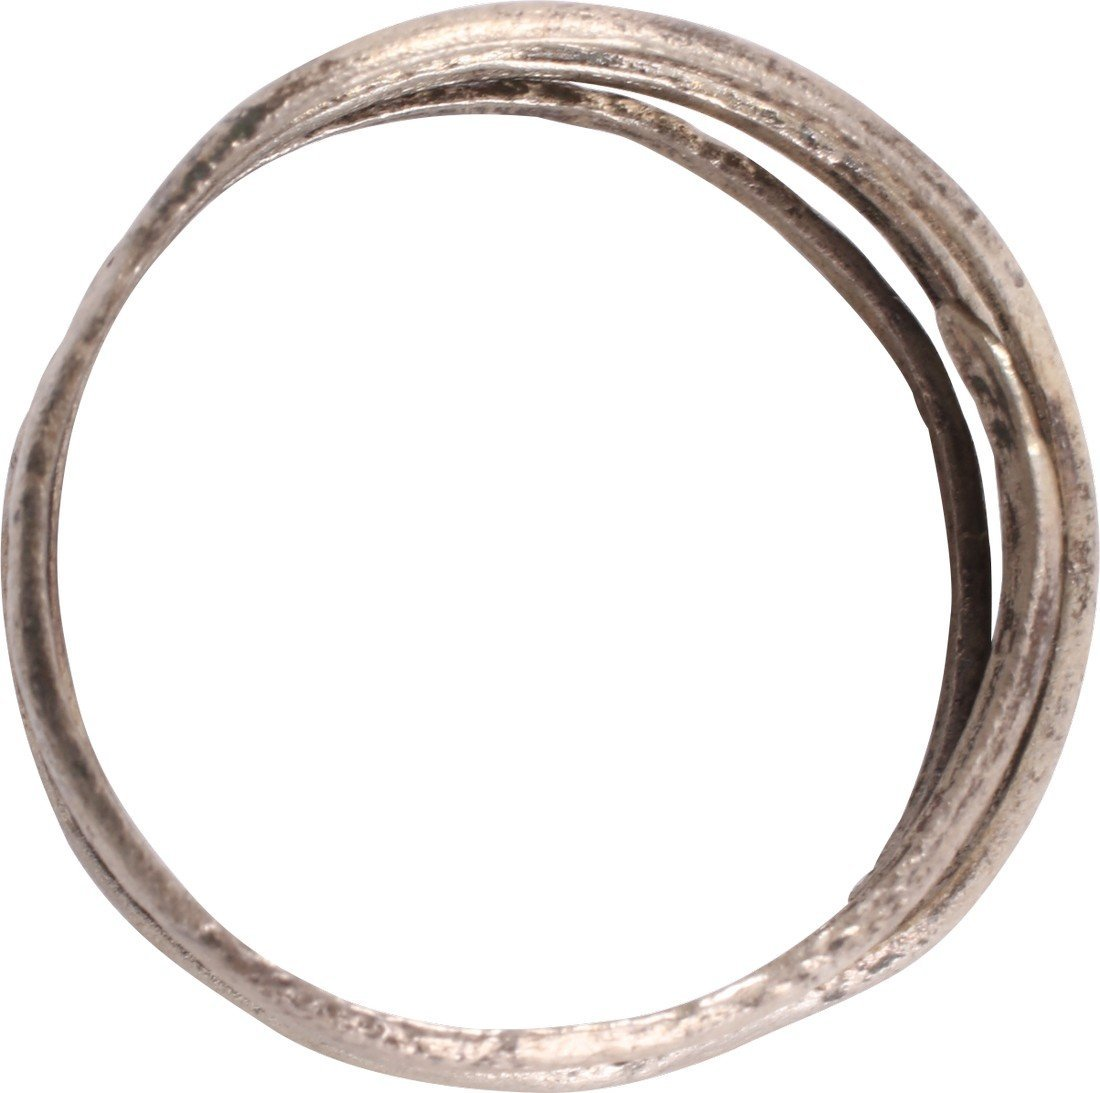 Silvered Bronze Viking Coil Ring, 9th-10th C - 2